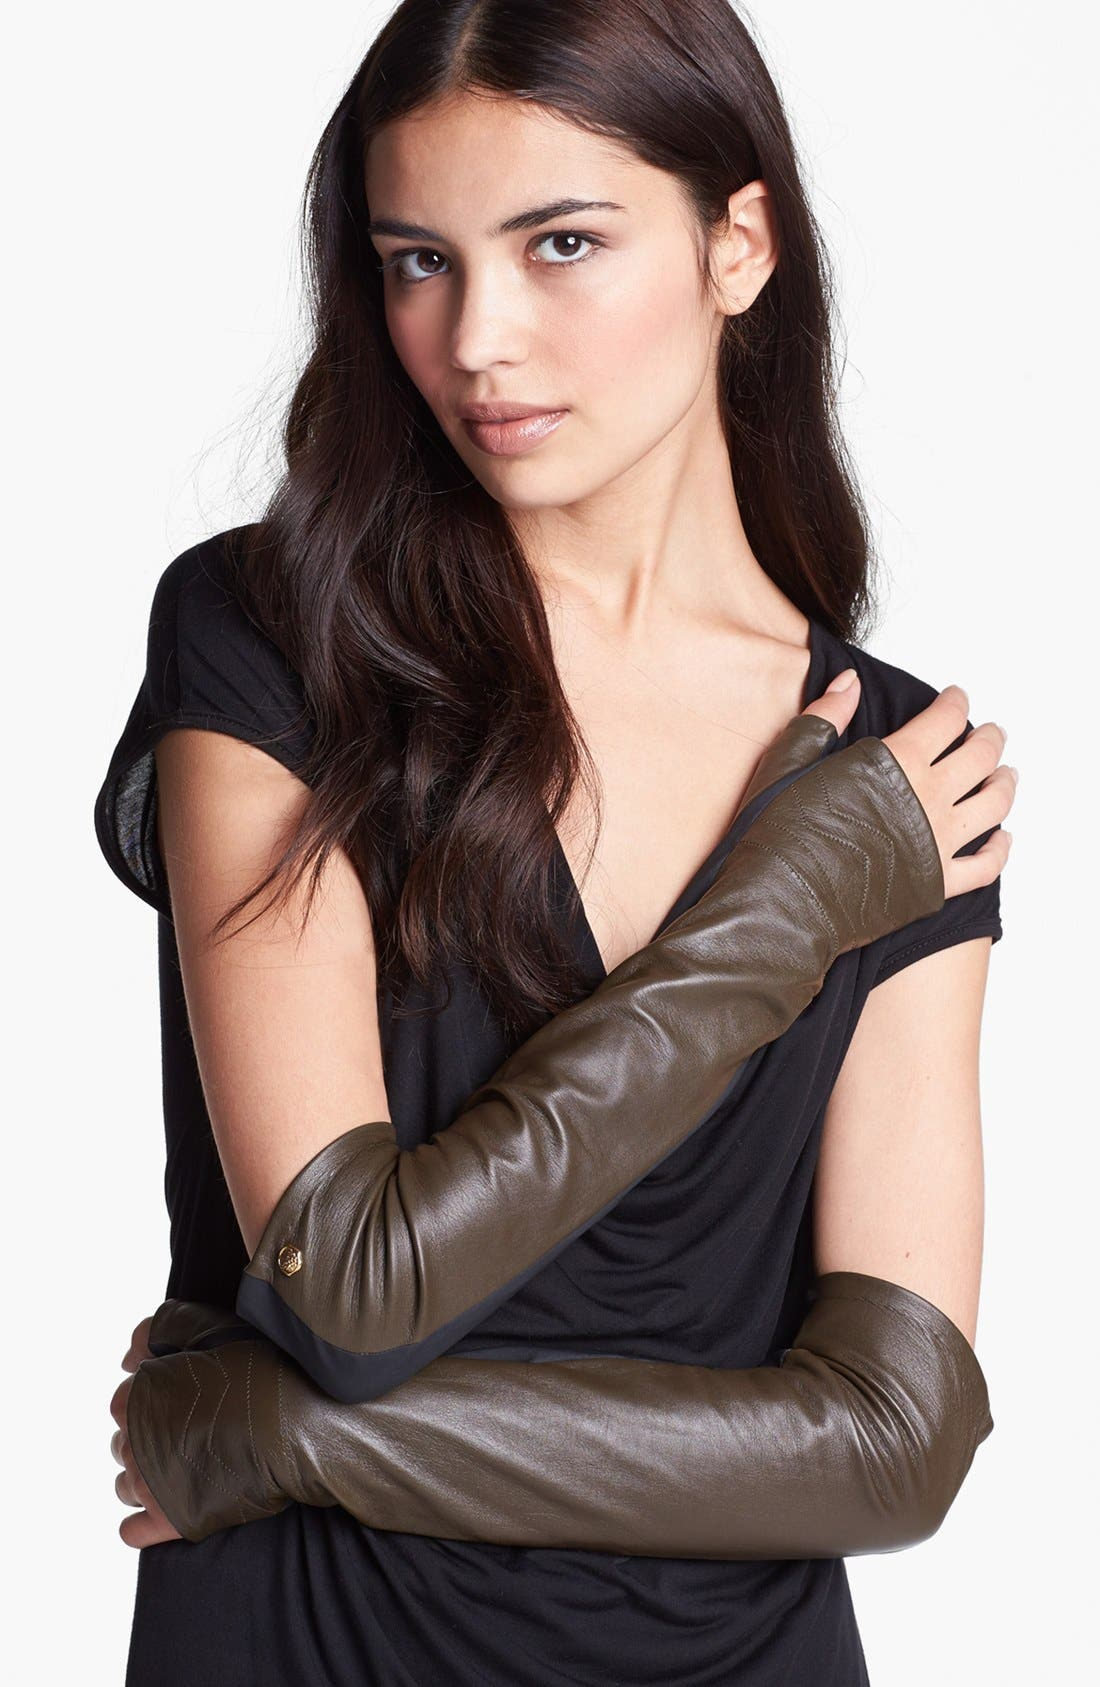 Alternate Image 1 Selected - Vince Camuto Chevron Quilted Arm Warmers